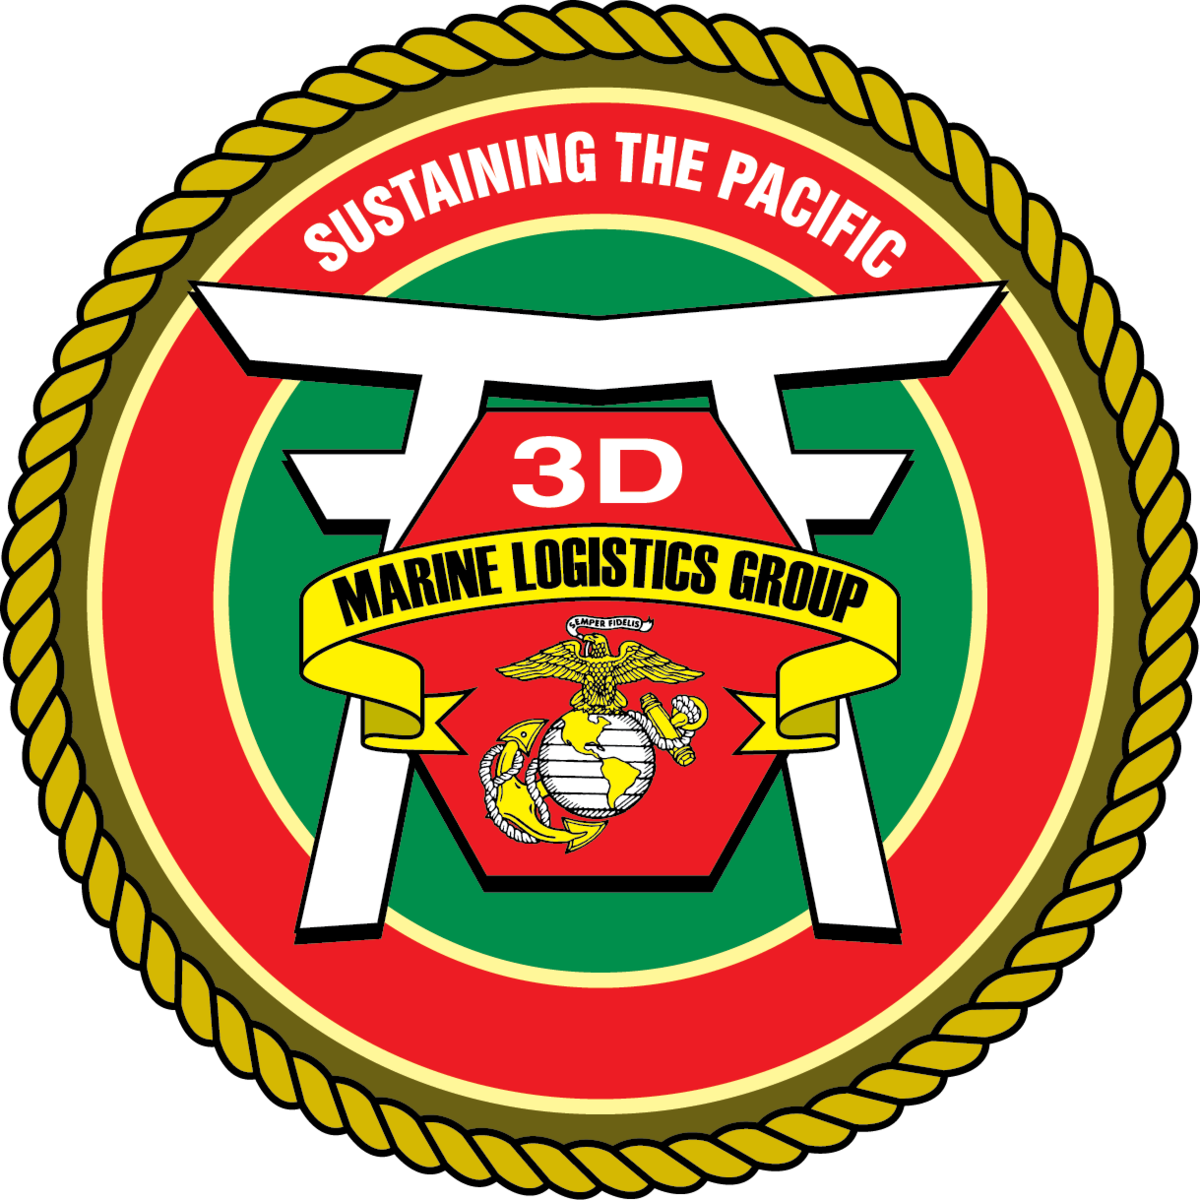 3rd Marine Logistics Group - Wikipedia